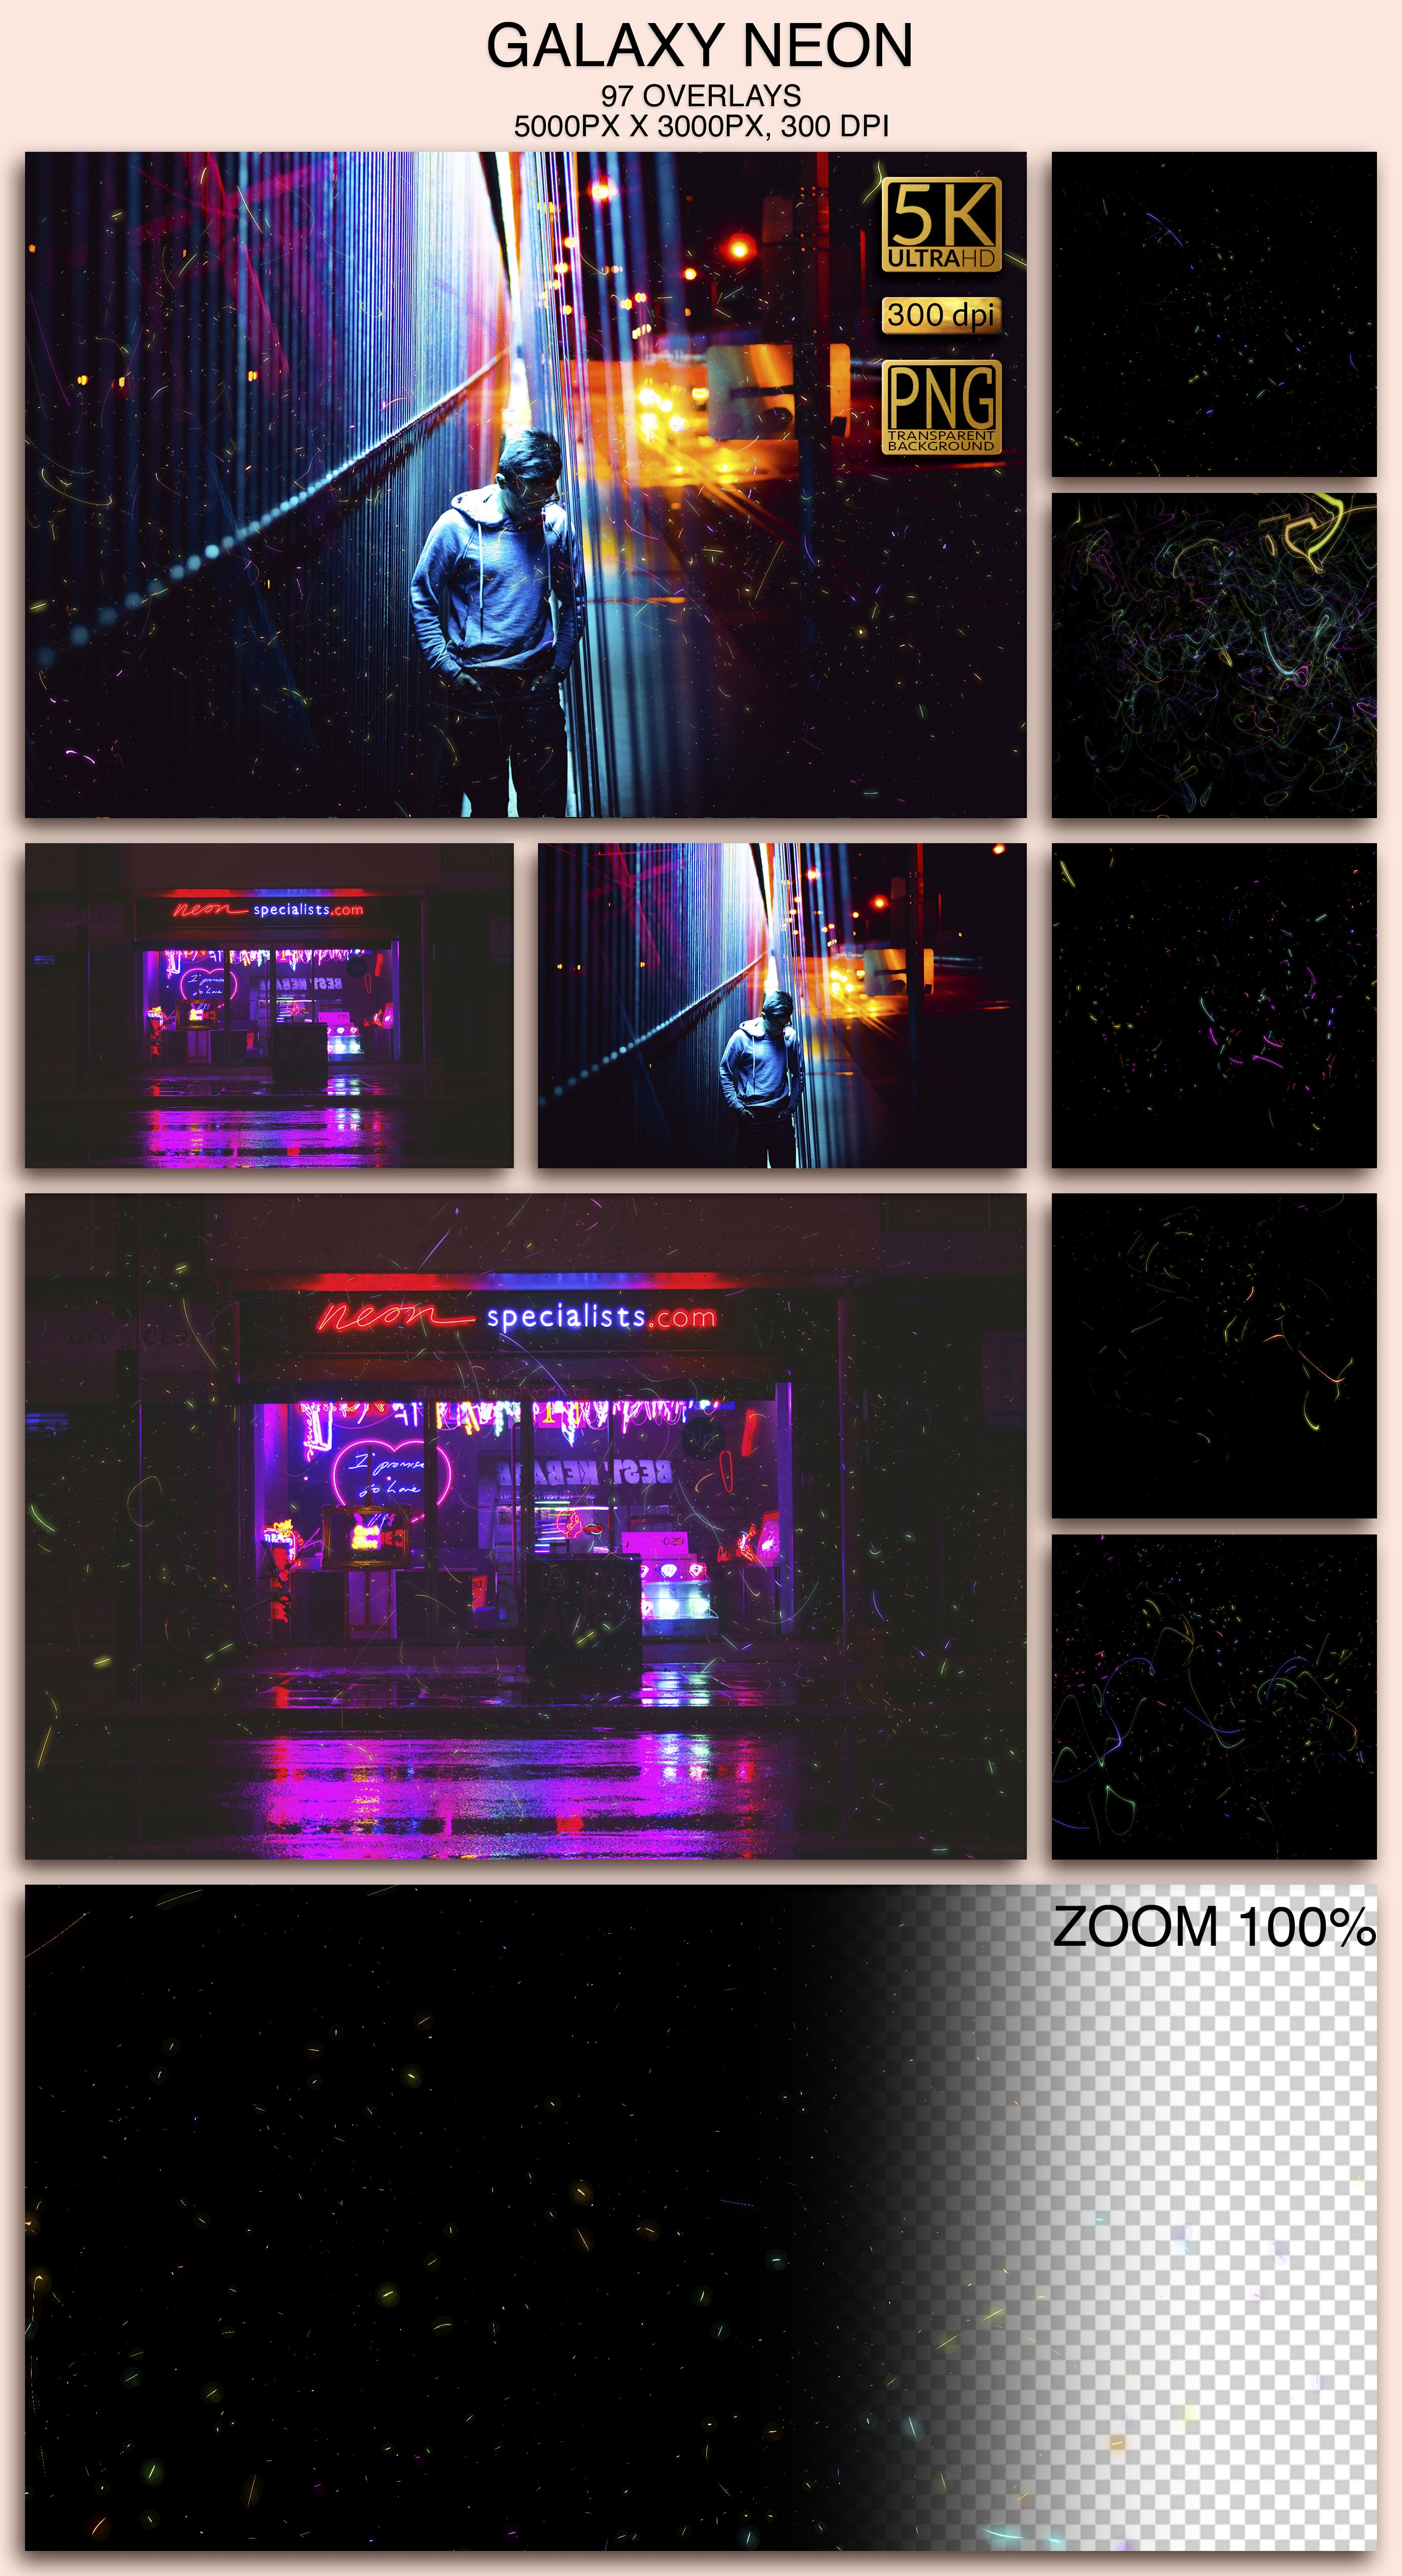 2006 Overlays Photoshop Bundle - Galaxy Neon